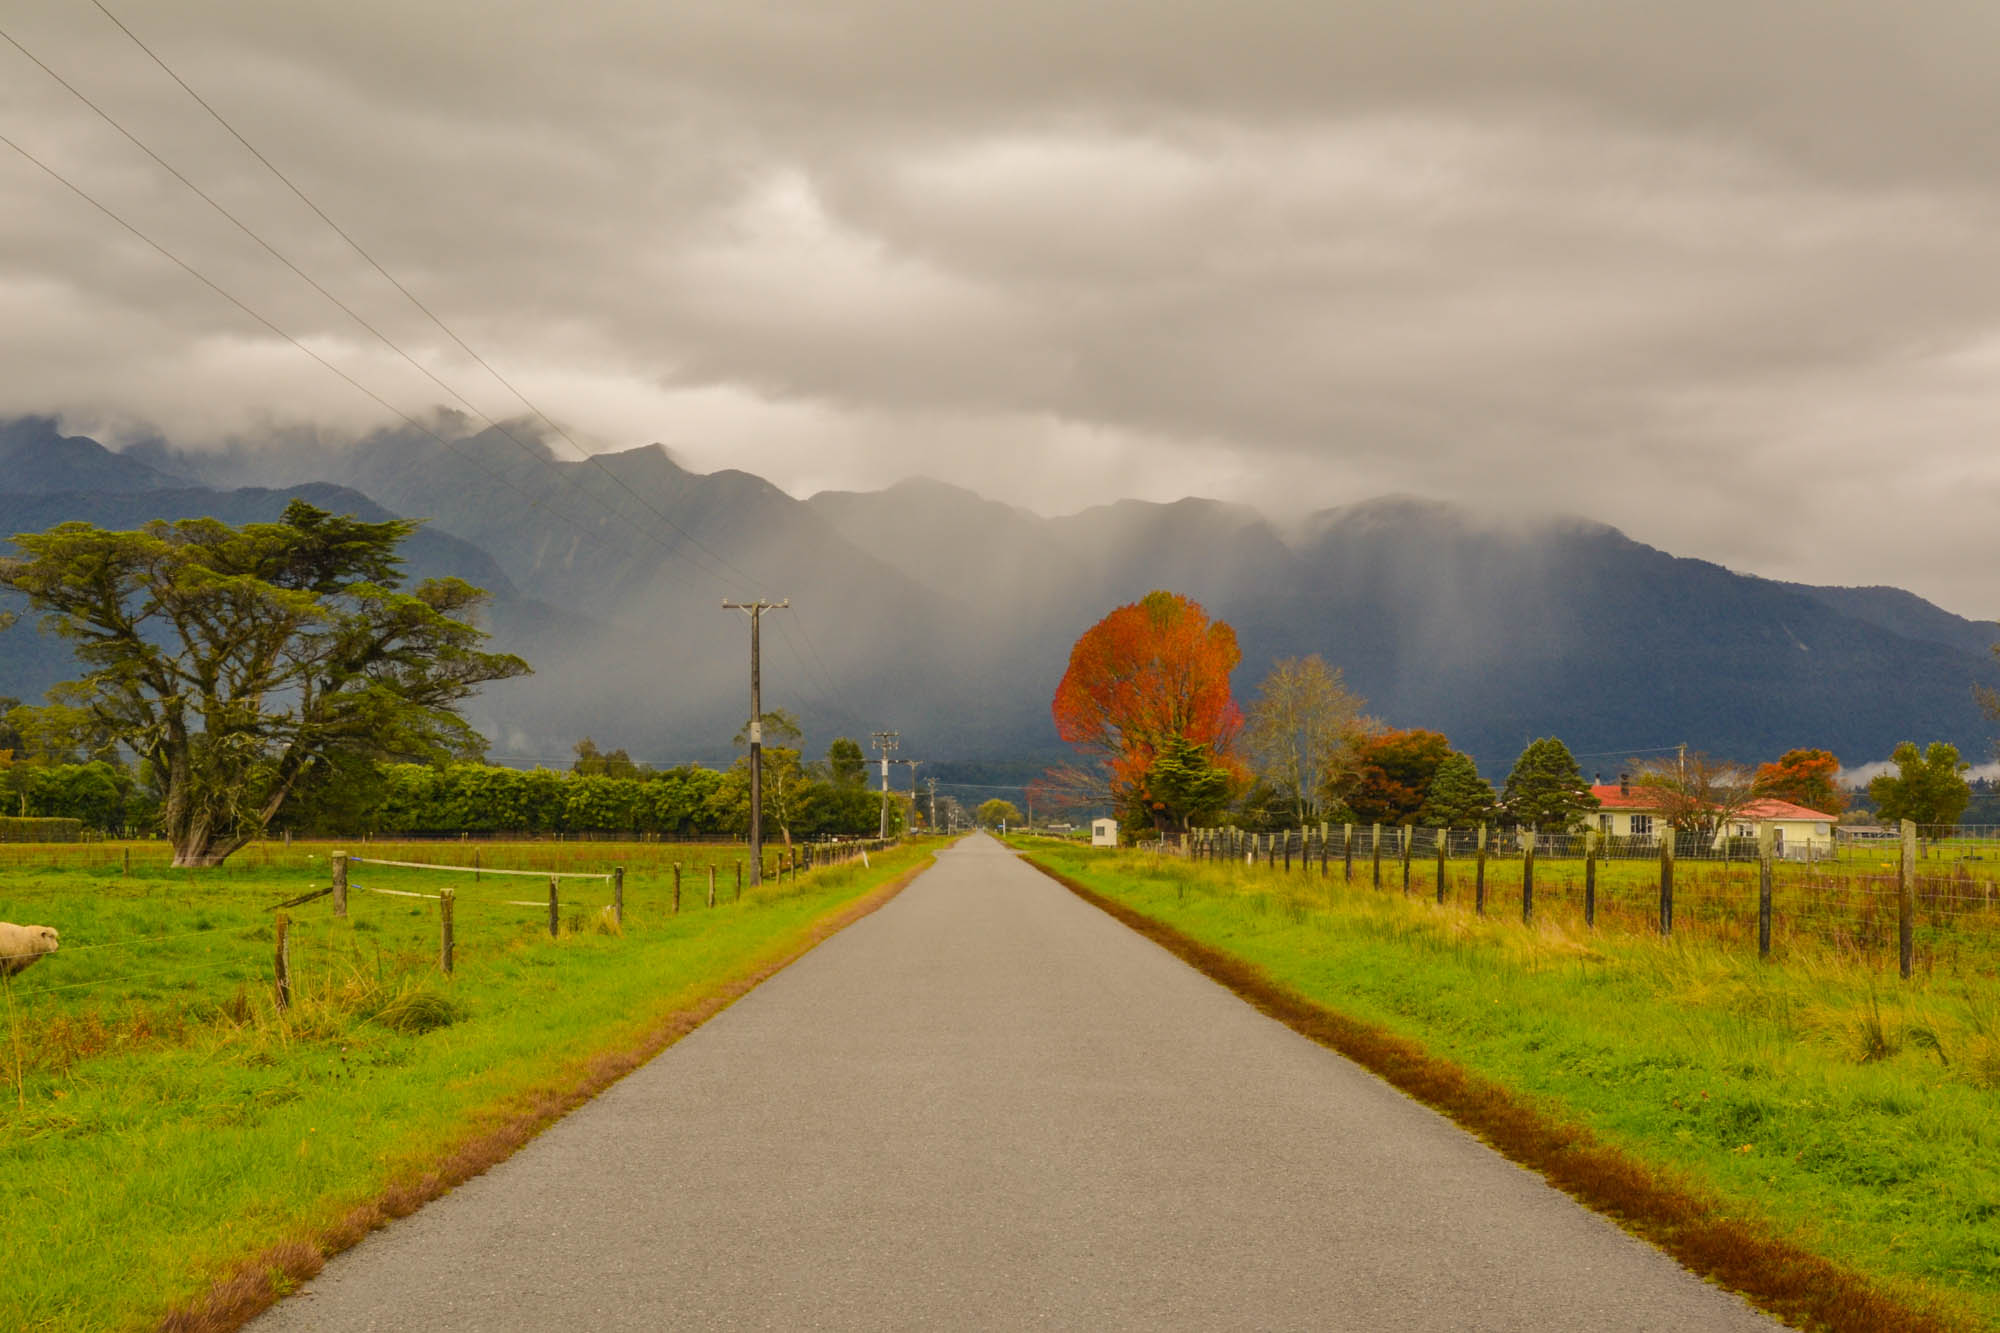 New Zealand road trip c Sarah Gibbons